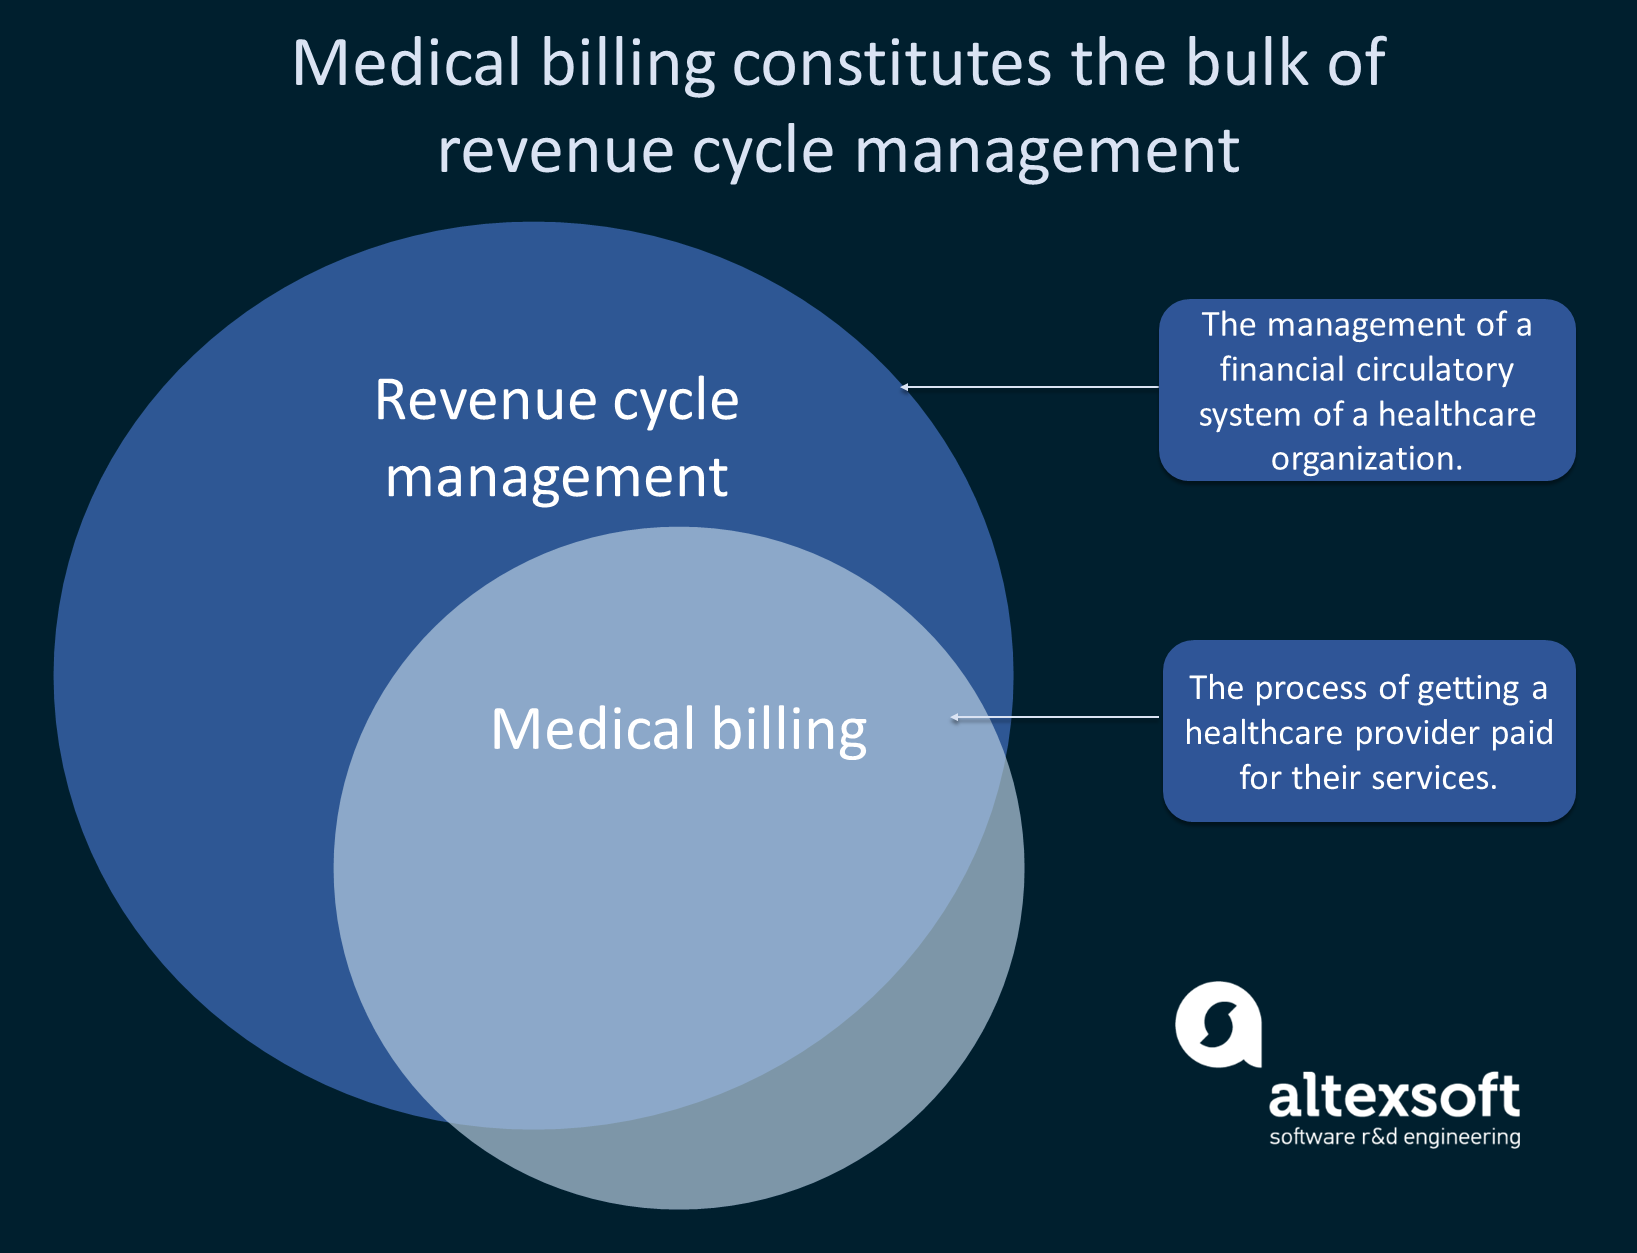 Medical billing as a part of healthcare revenue cycle